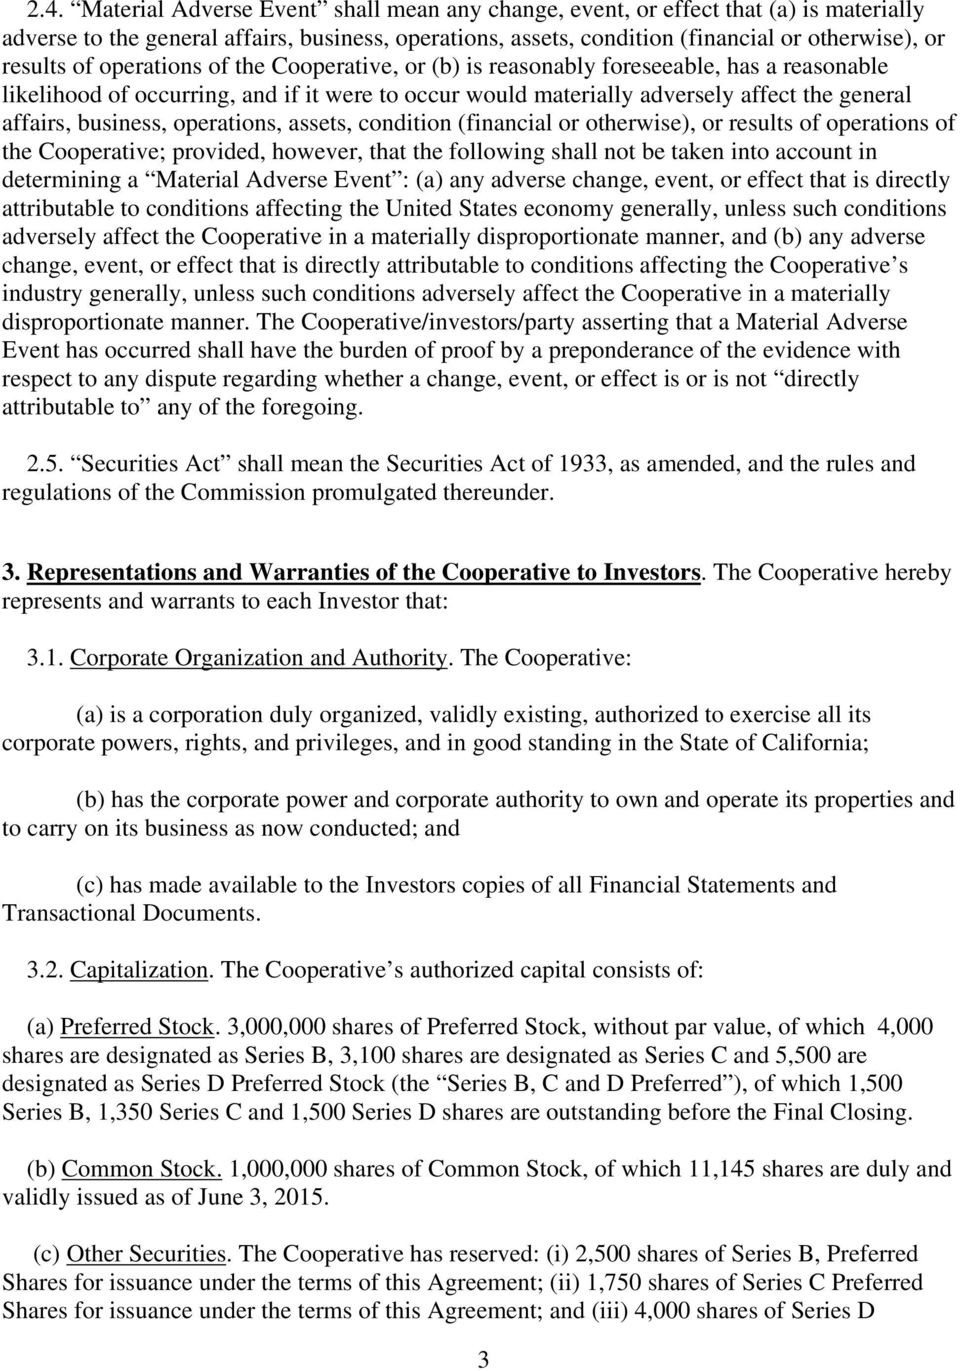 operations, assets, condition (financial or otherwise), or results of operations of the Cooperative; provided, however, that the following shall not be taken into account in determining a Material